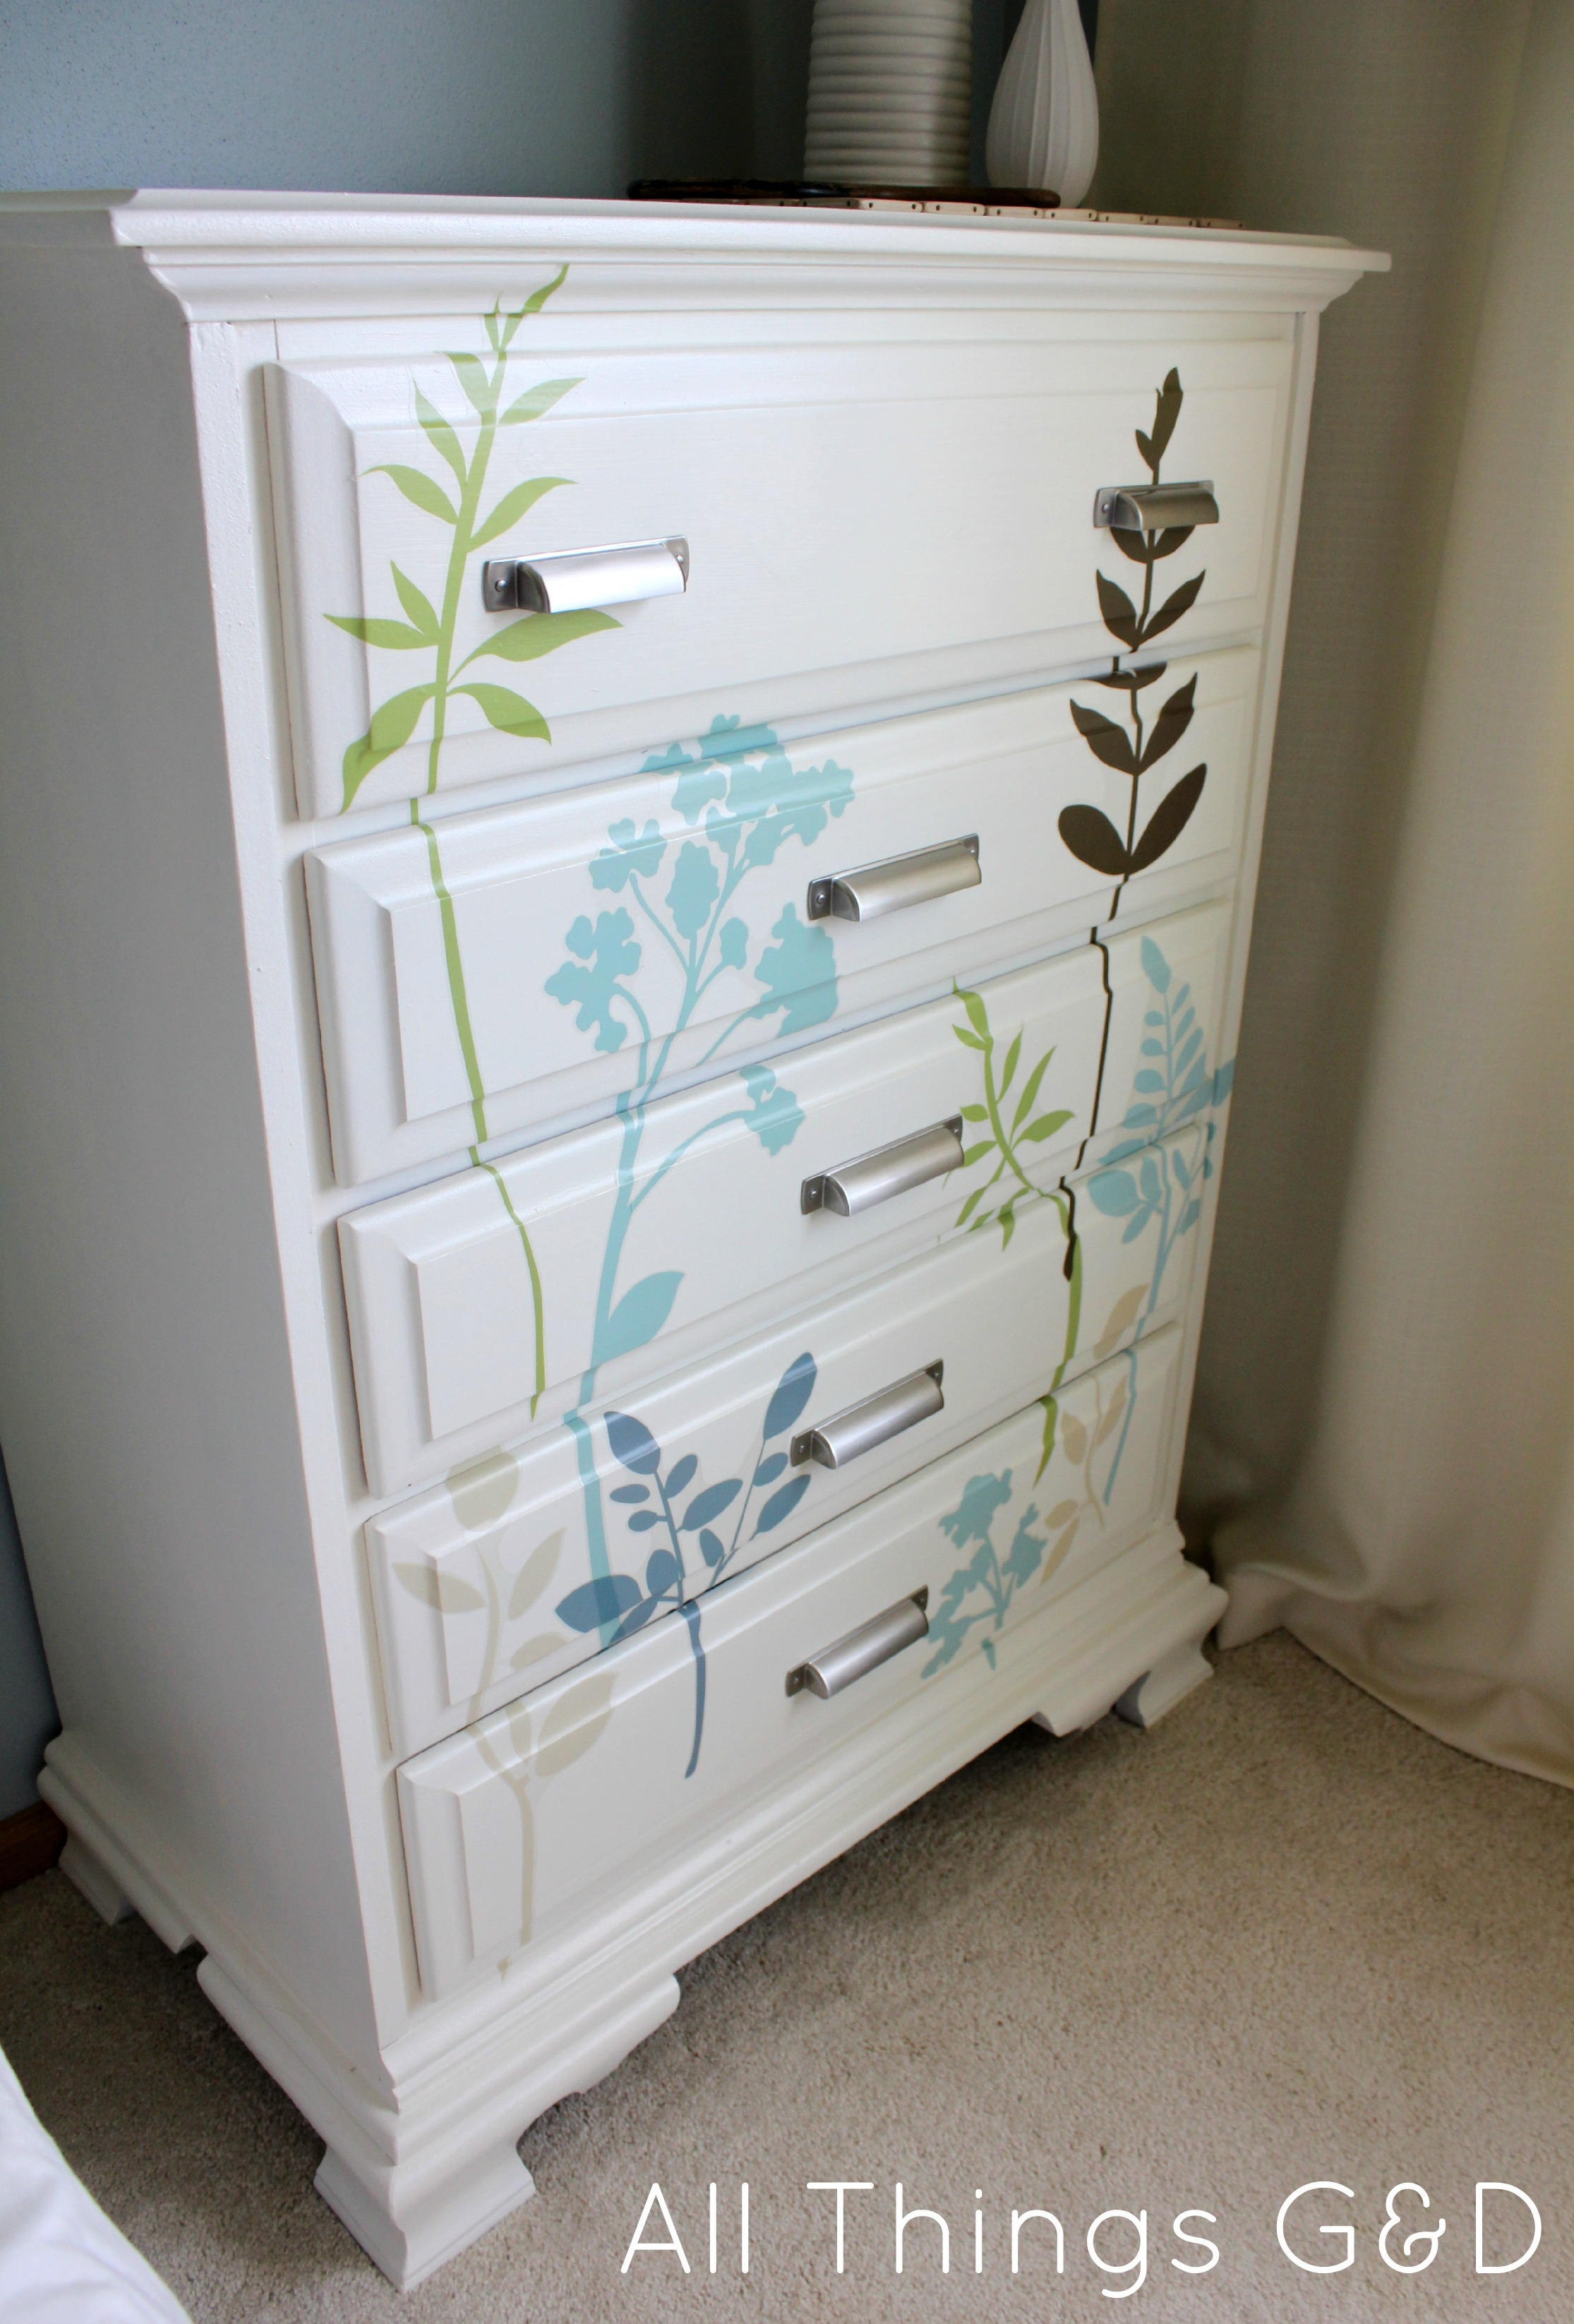 diy decal dresser  all things gd - looking for a cheap and easy way to update an old dresser consider walldecals